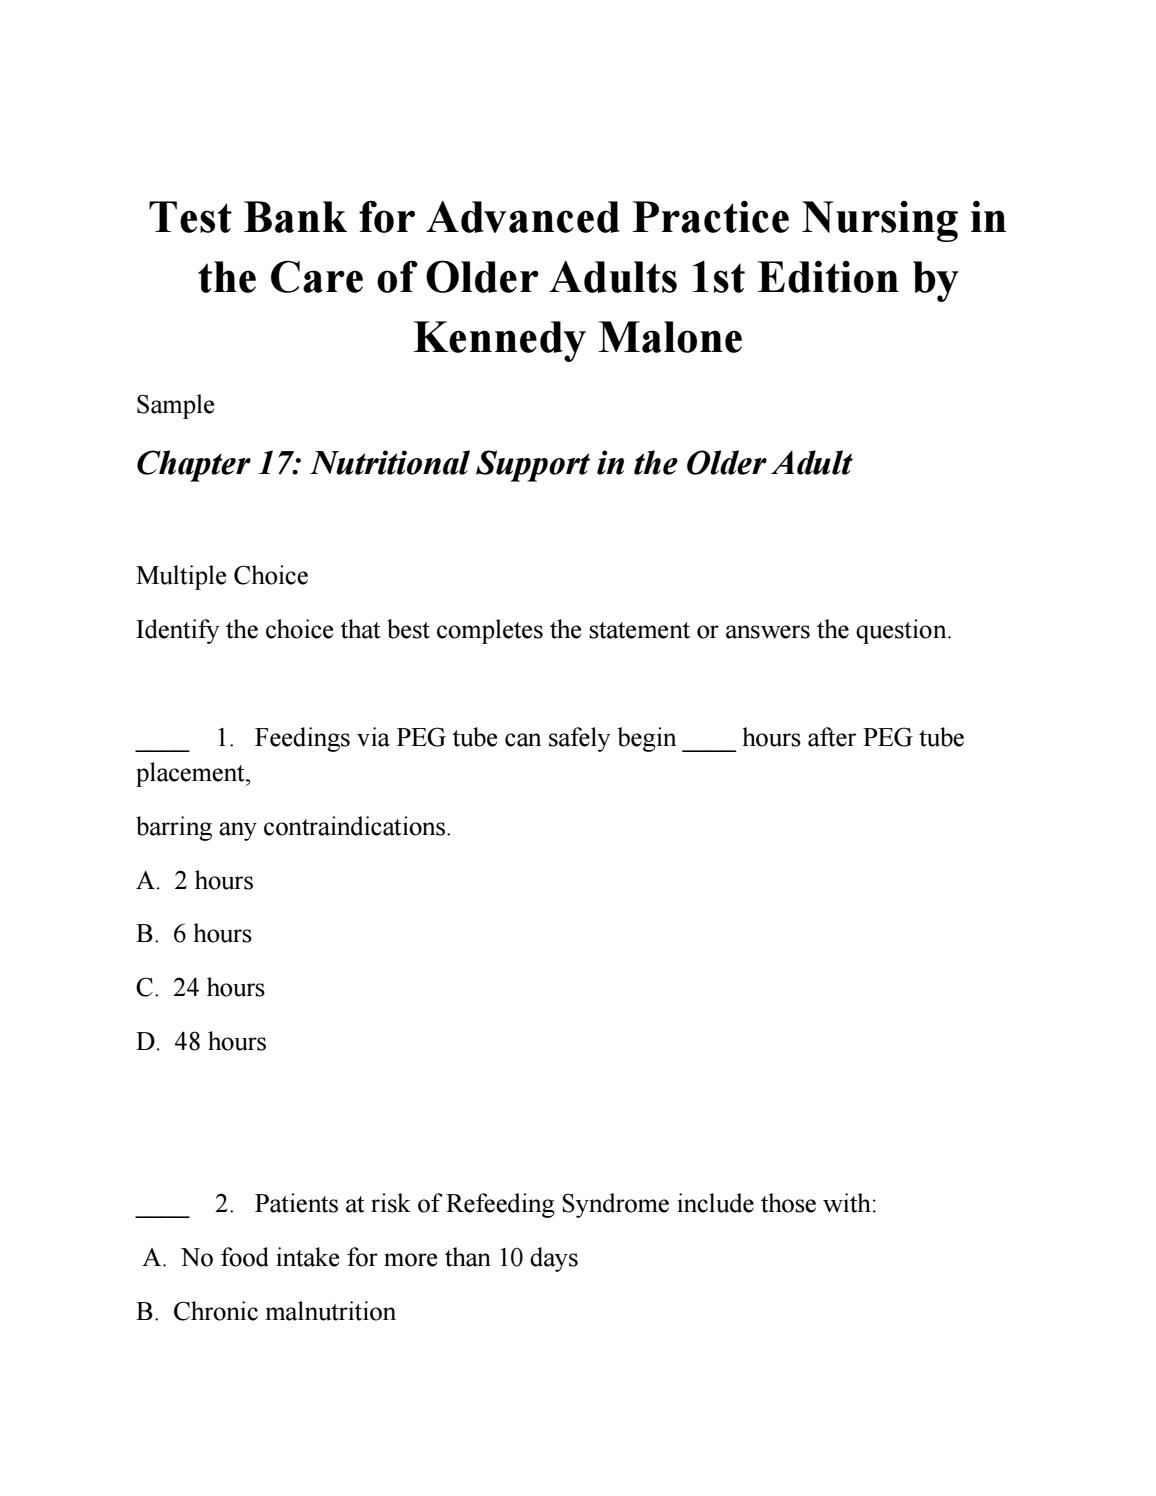 Test bank for advanced practice nursing in the care of older adults 1st  edition by malone